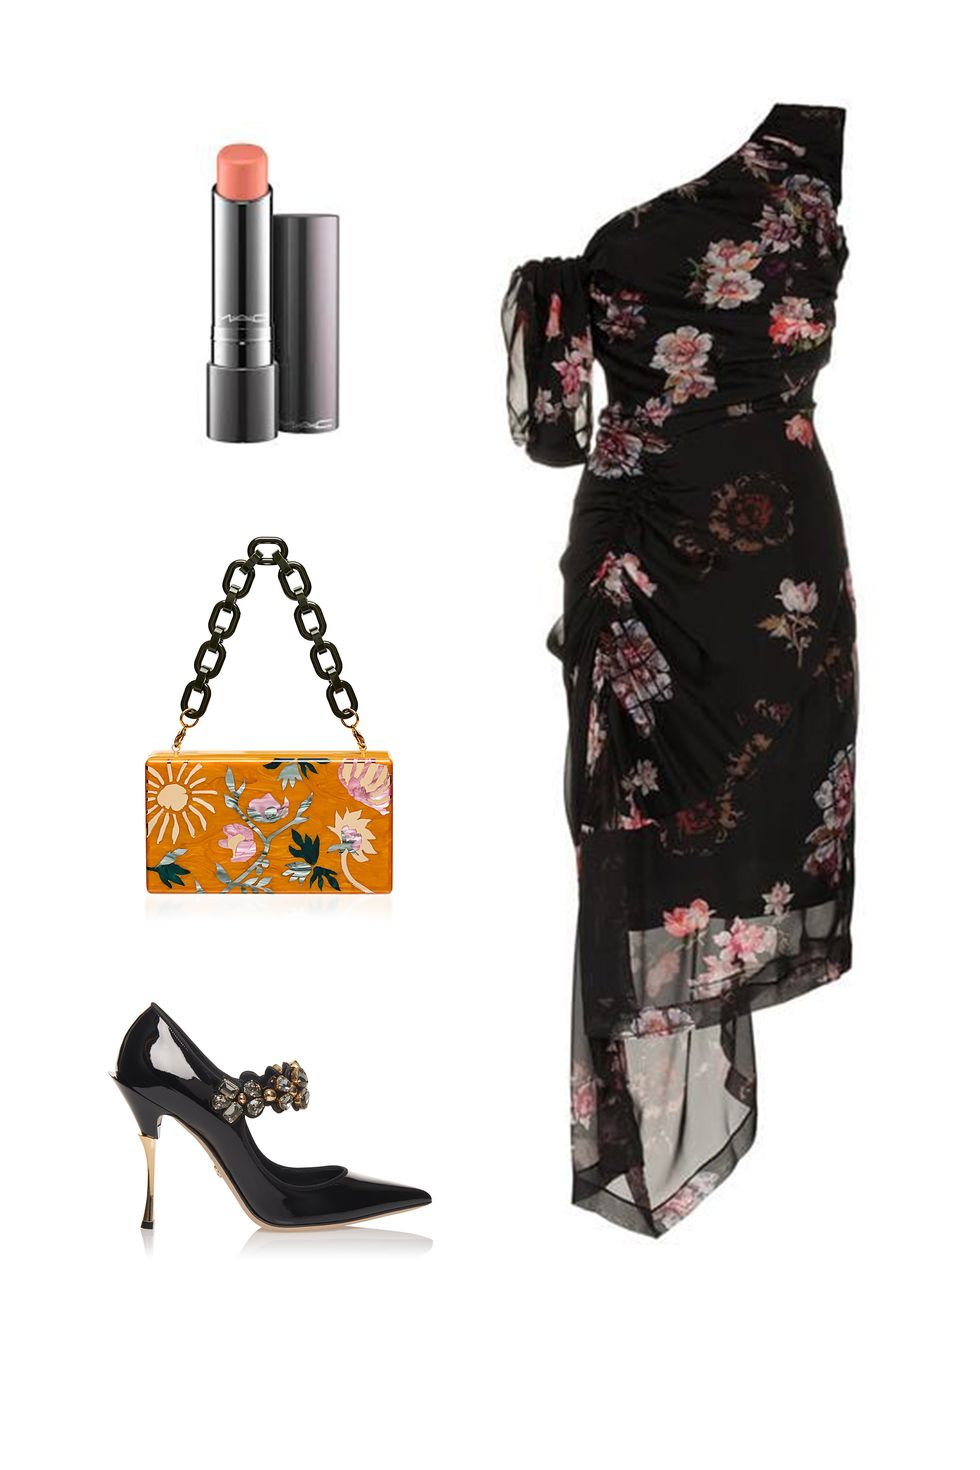 what-to-wear-for-a-fall-wedding-guest-outfit-autumn-secret-garden-black-dress-bodycon-oneshoulder-floral-print-yellow-bag-black-shoe-pumps-dinner.jpg